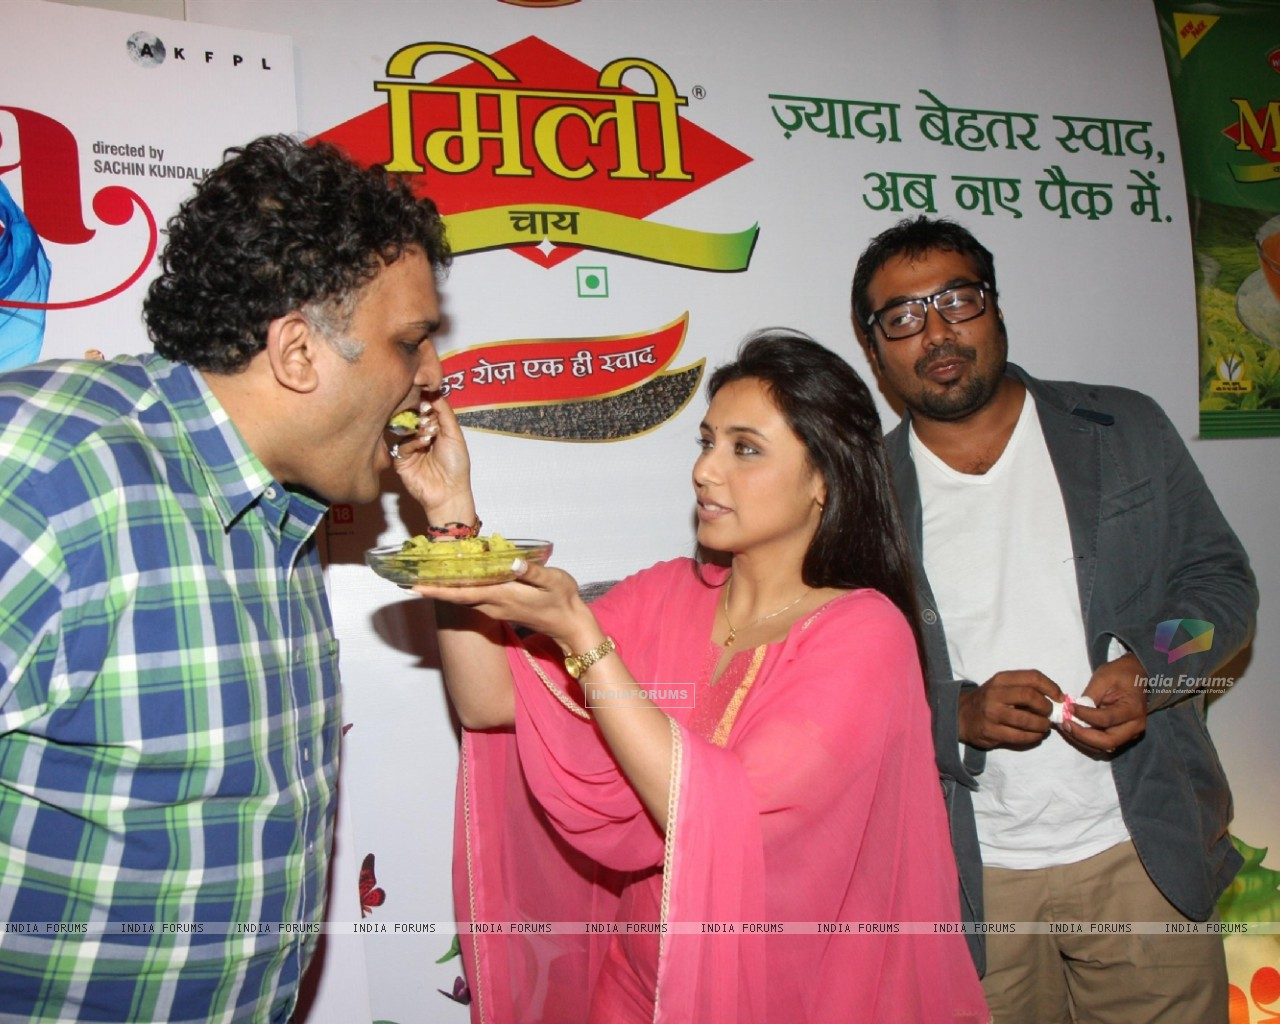 Bollywood actress Rani Mukherji with Director Anurag Kashyap promoting Aiyyaa with Chaha Poha (Tea and Maharashtrian Snack Poha) at Wagh Bakri Tea Lounge in Mumbai (230476) size:1280x1024